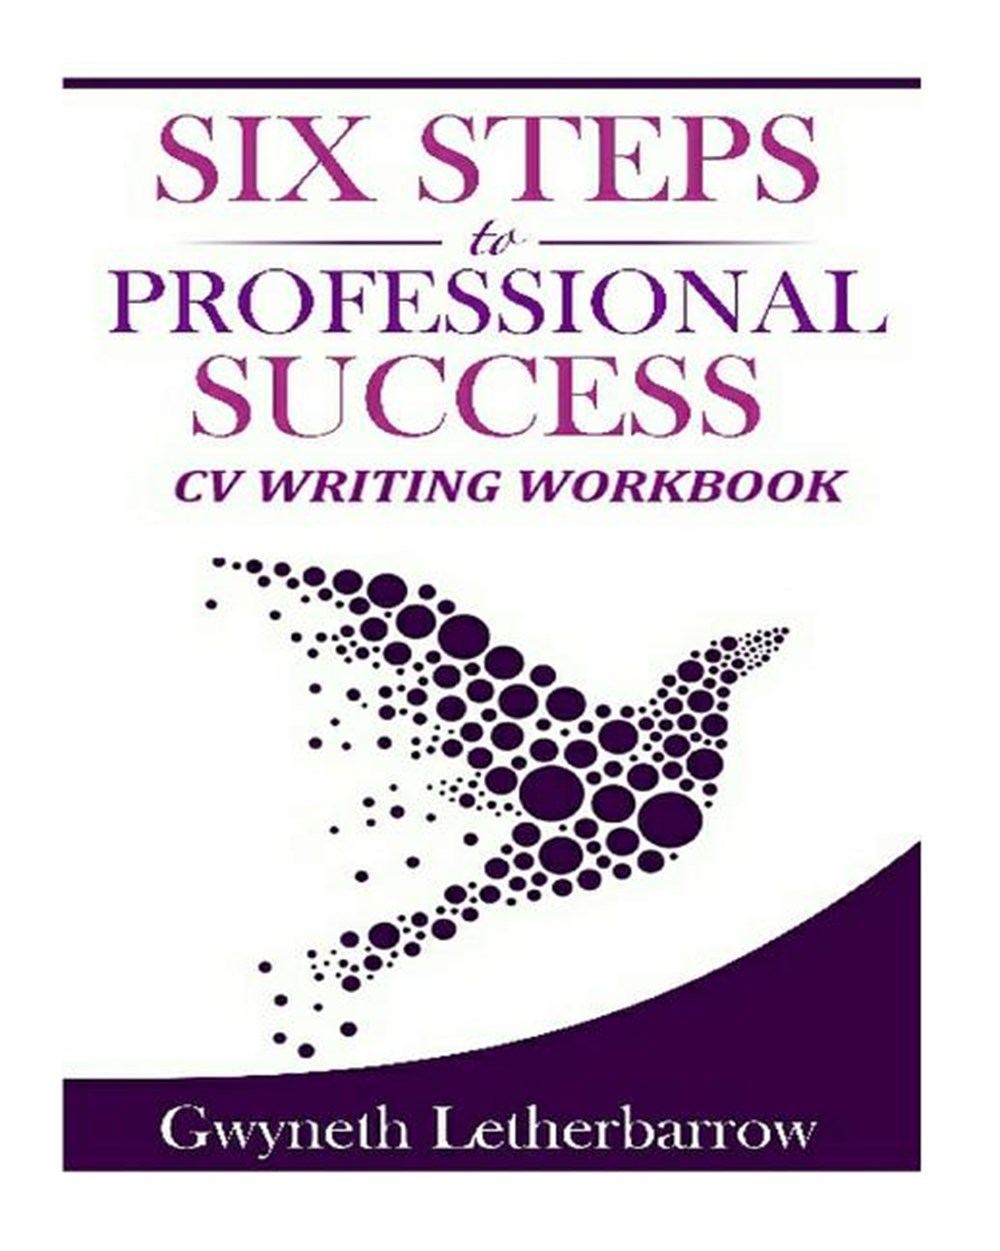 Six Steps to Professional Success - CV Writing Workbook